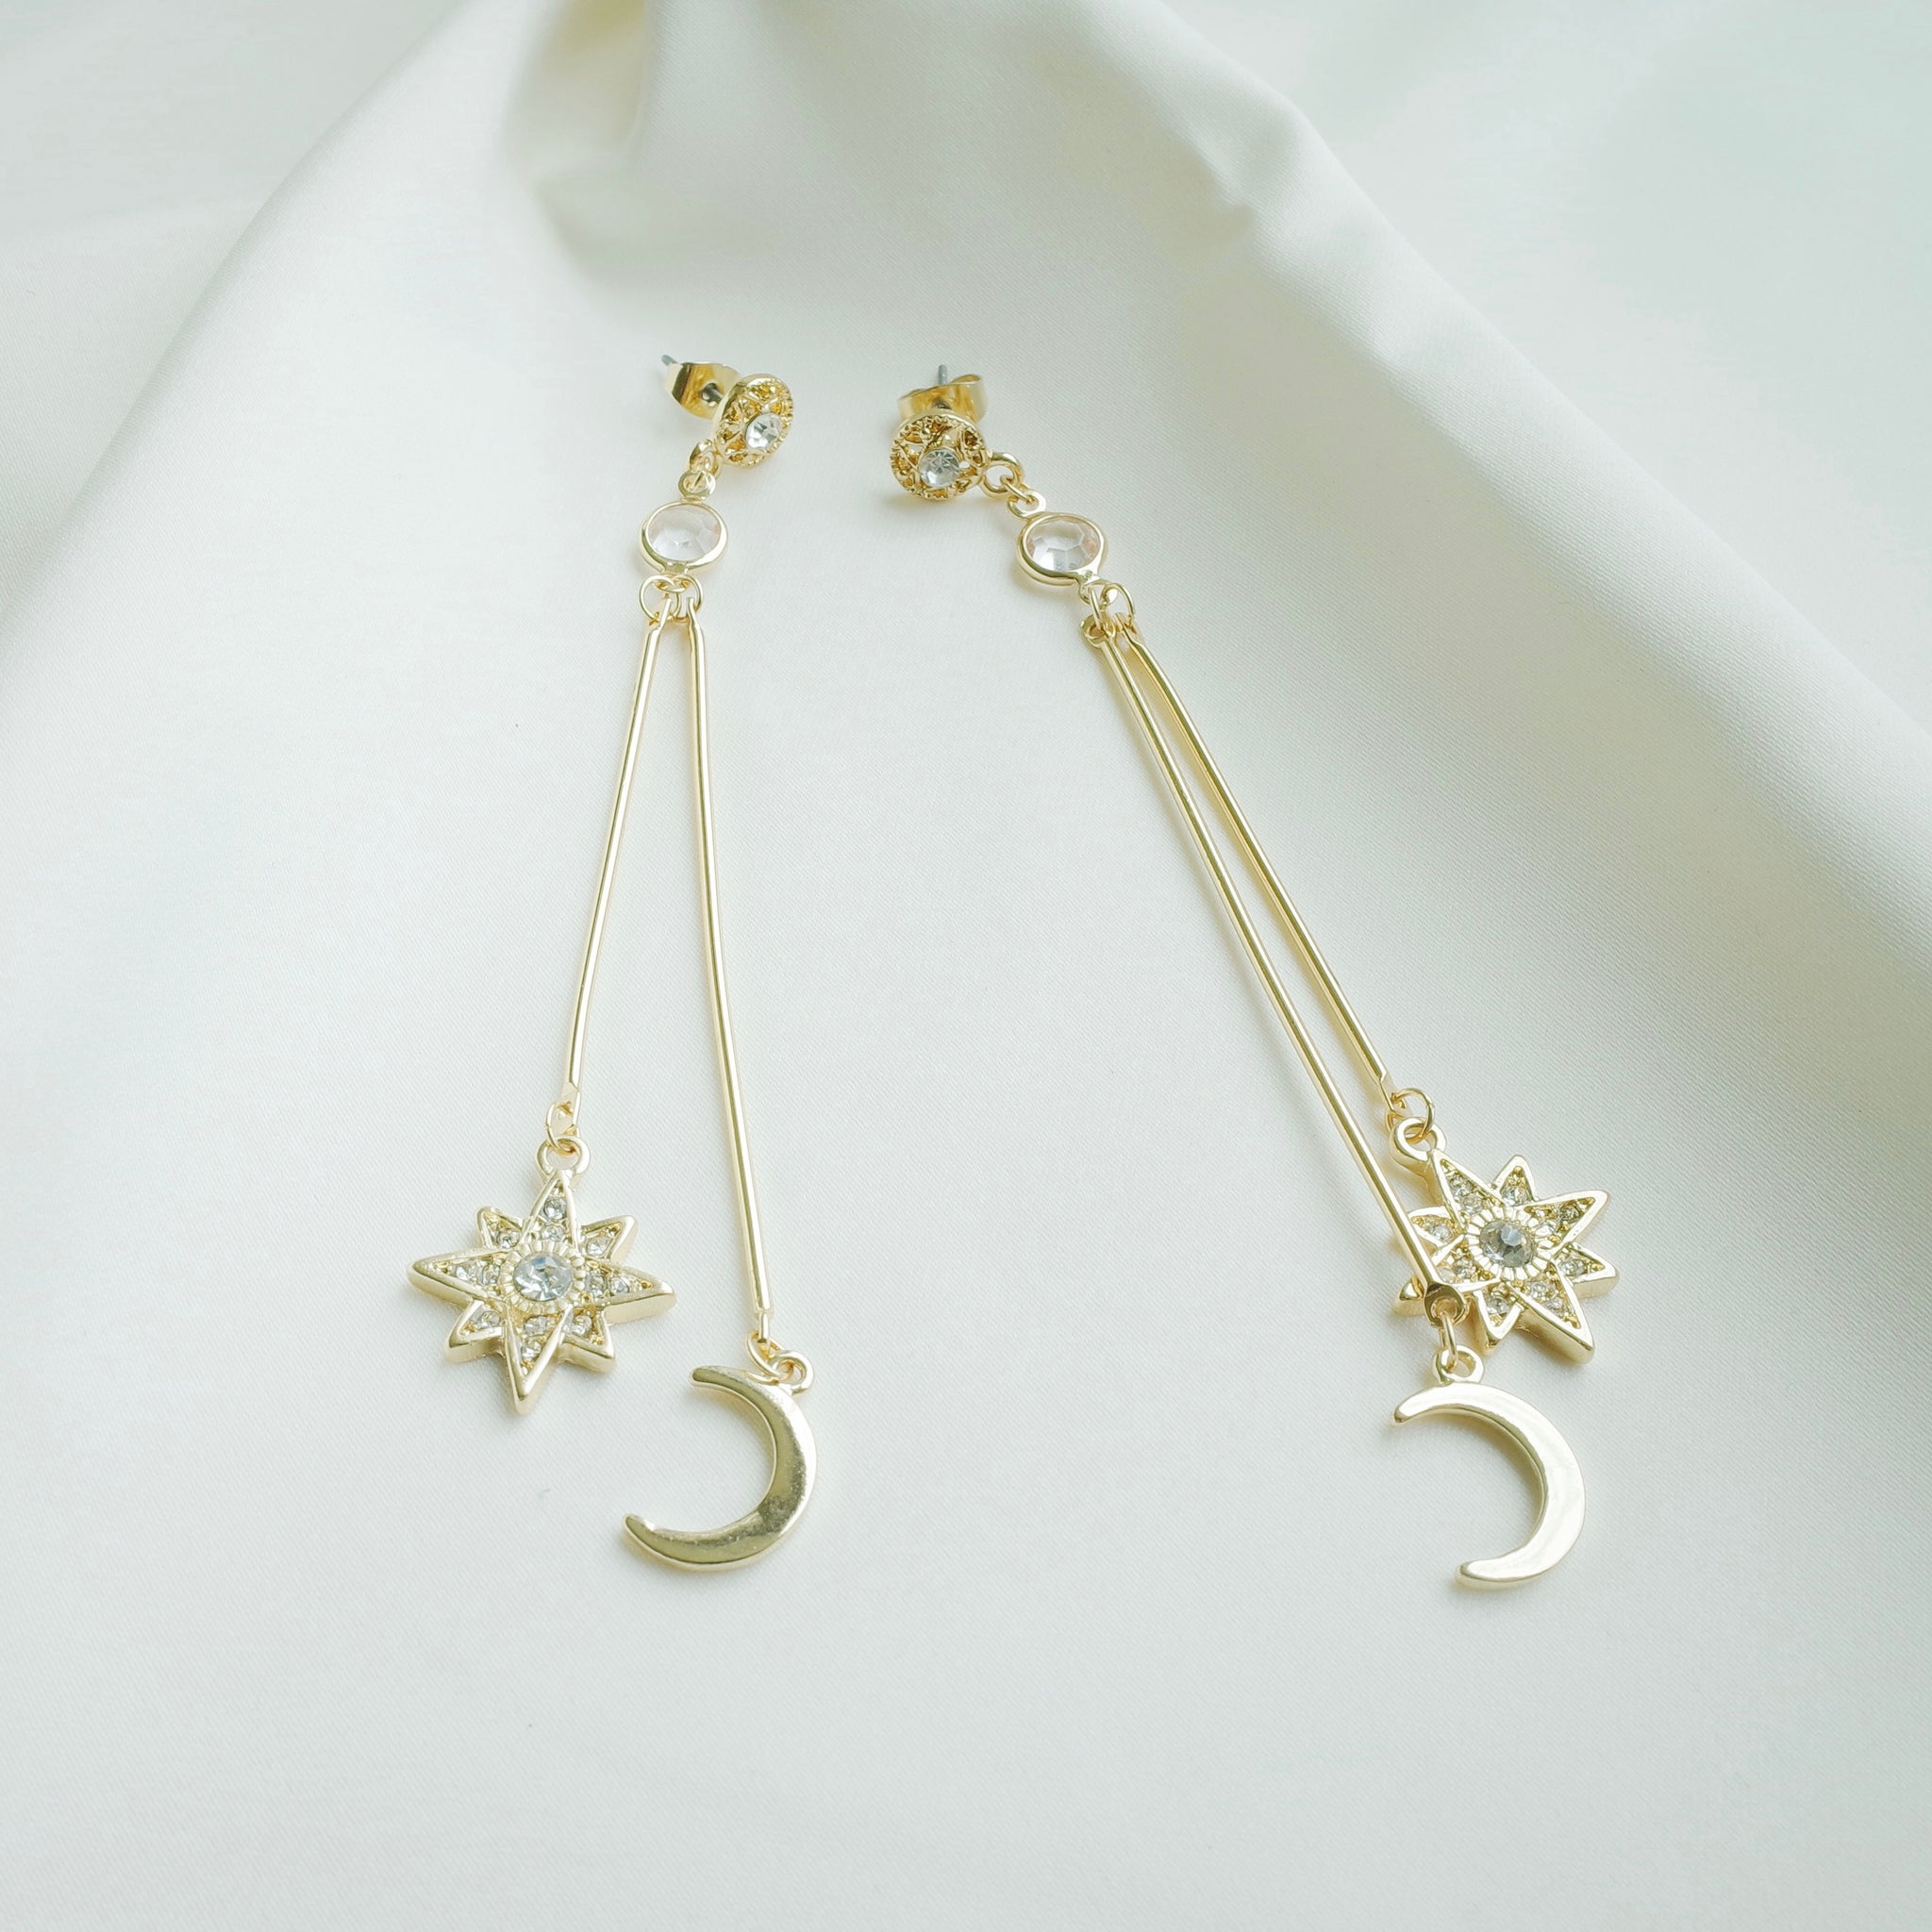 Moonlight Beauty Earrings in Gold